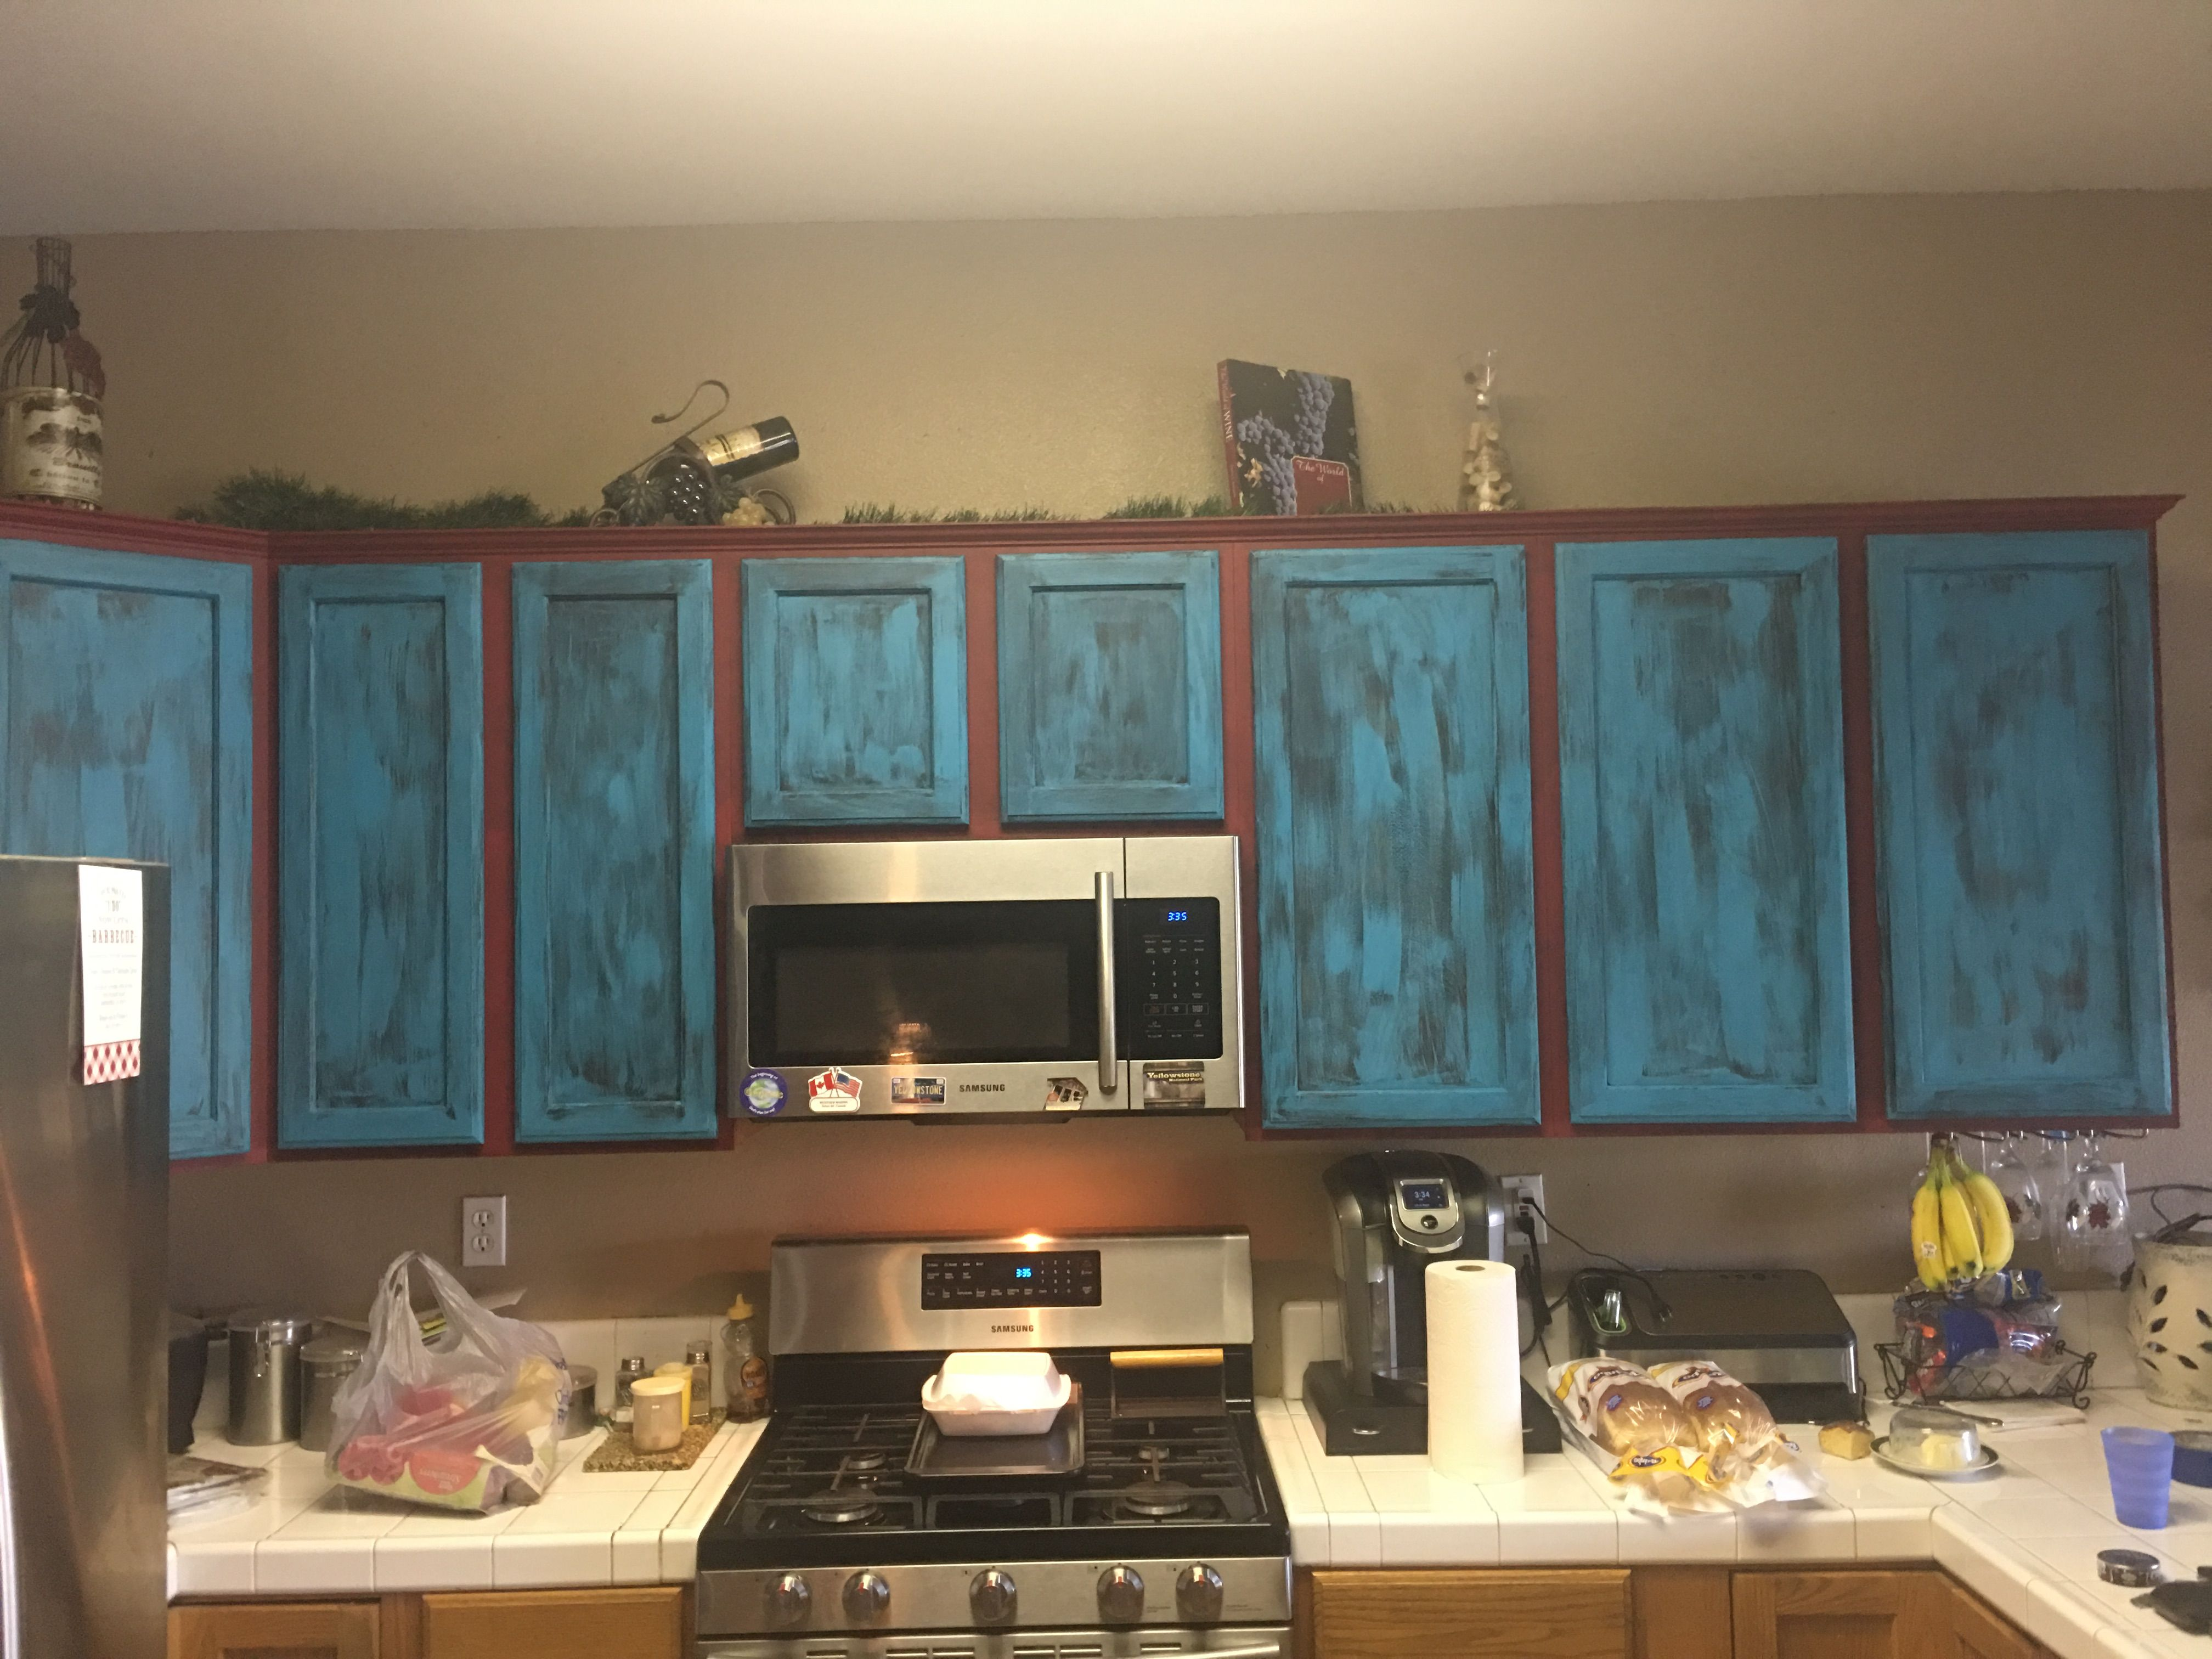 Teal And Red Chalk Paint Kitchen Cabinets Chalk Paint Kitchen Cabinets Chalk Paint Kitchen Painting Kitchen Cabinets